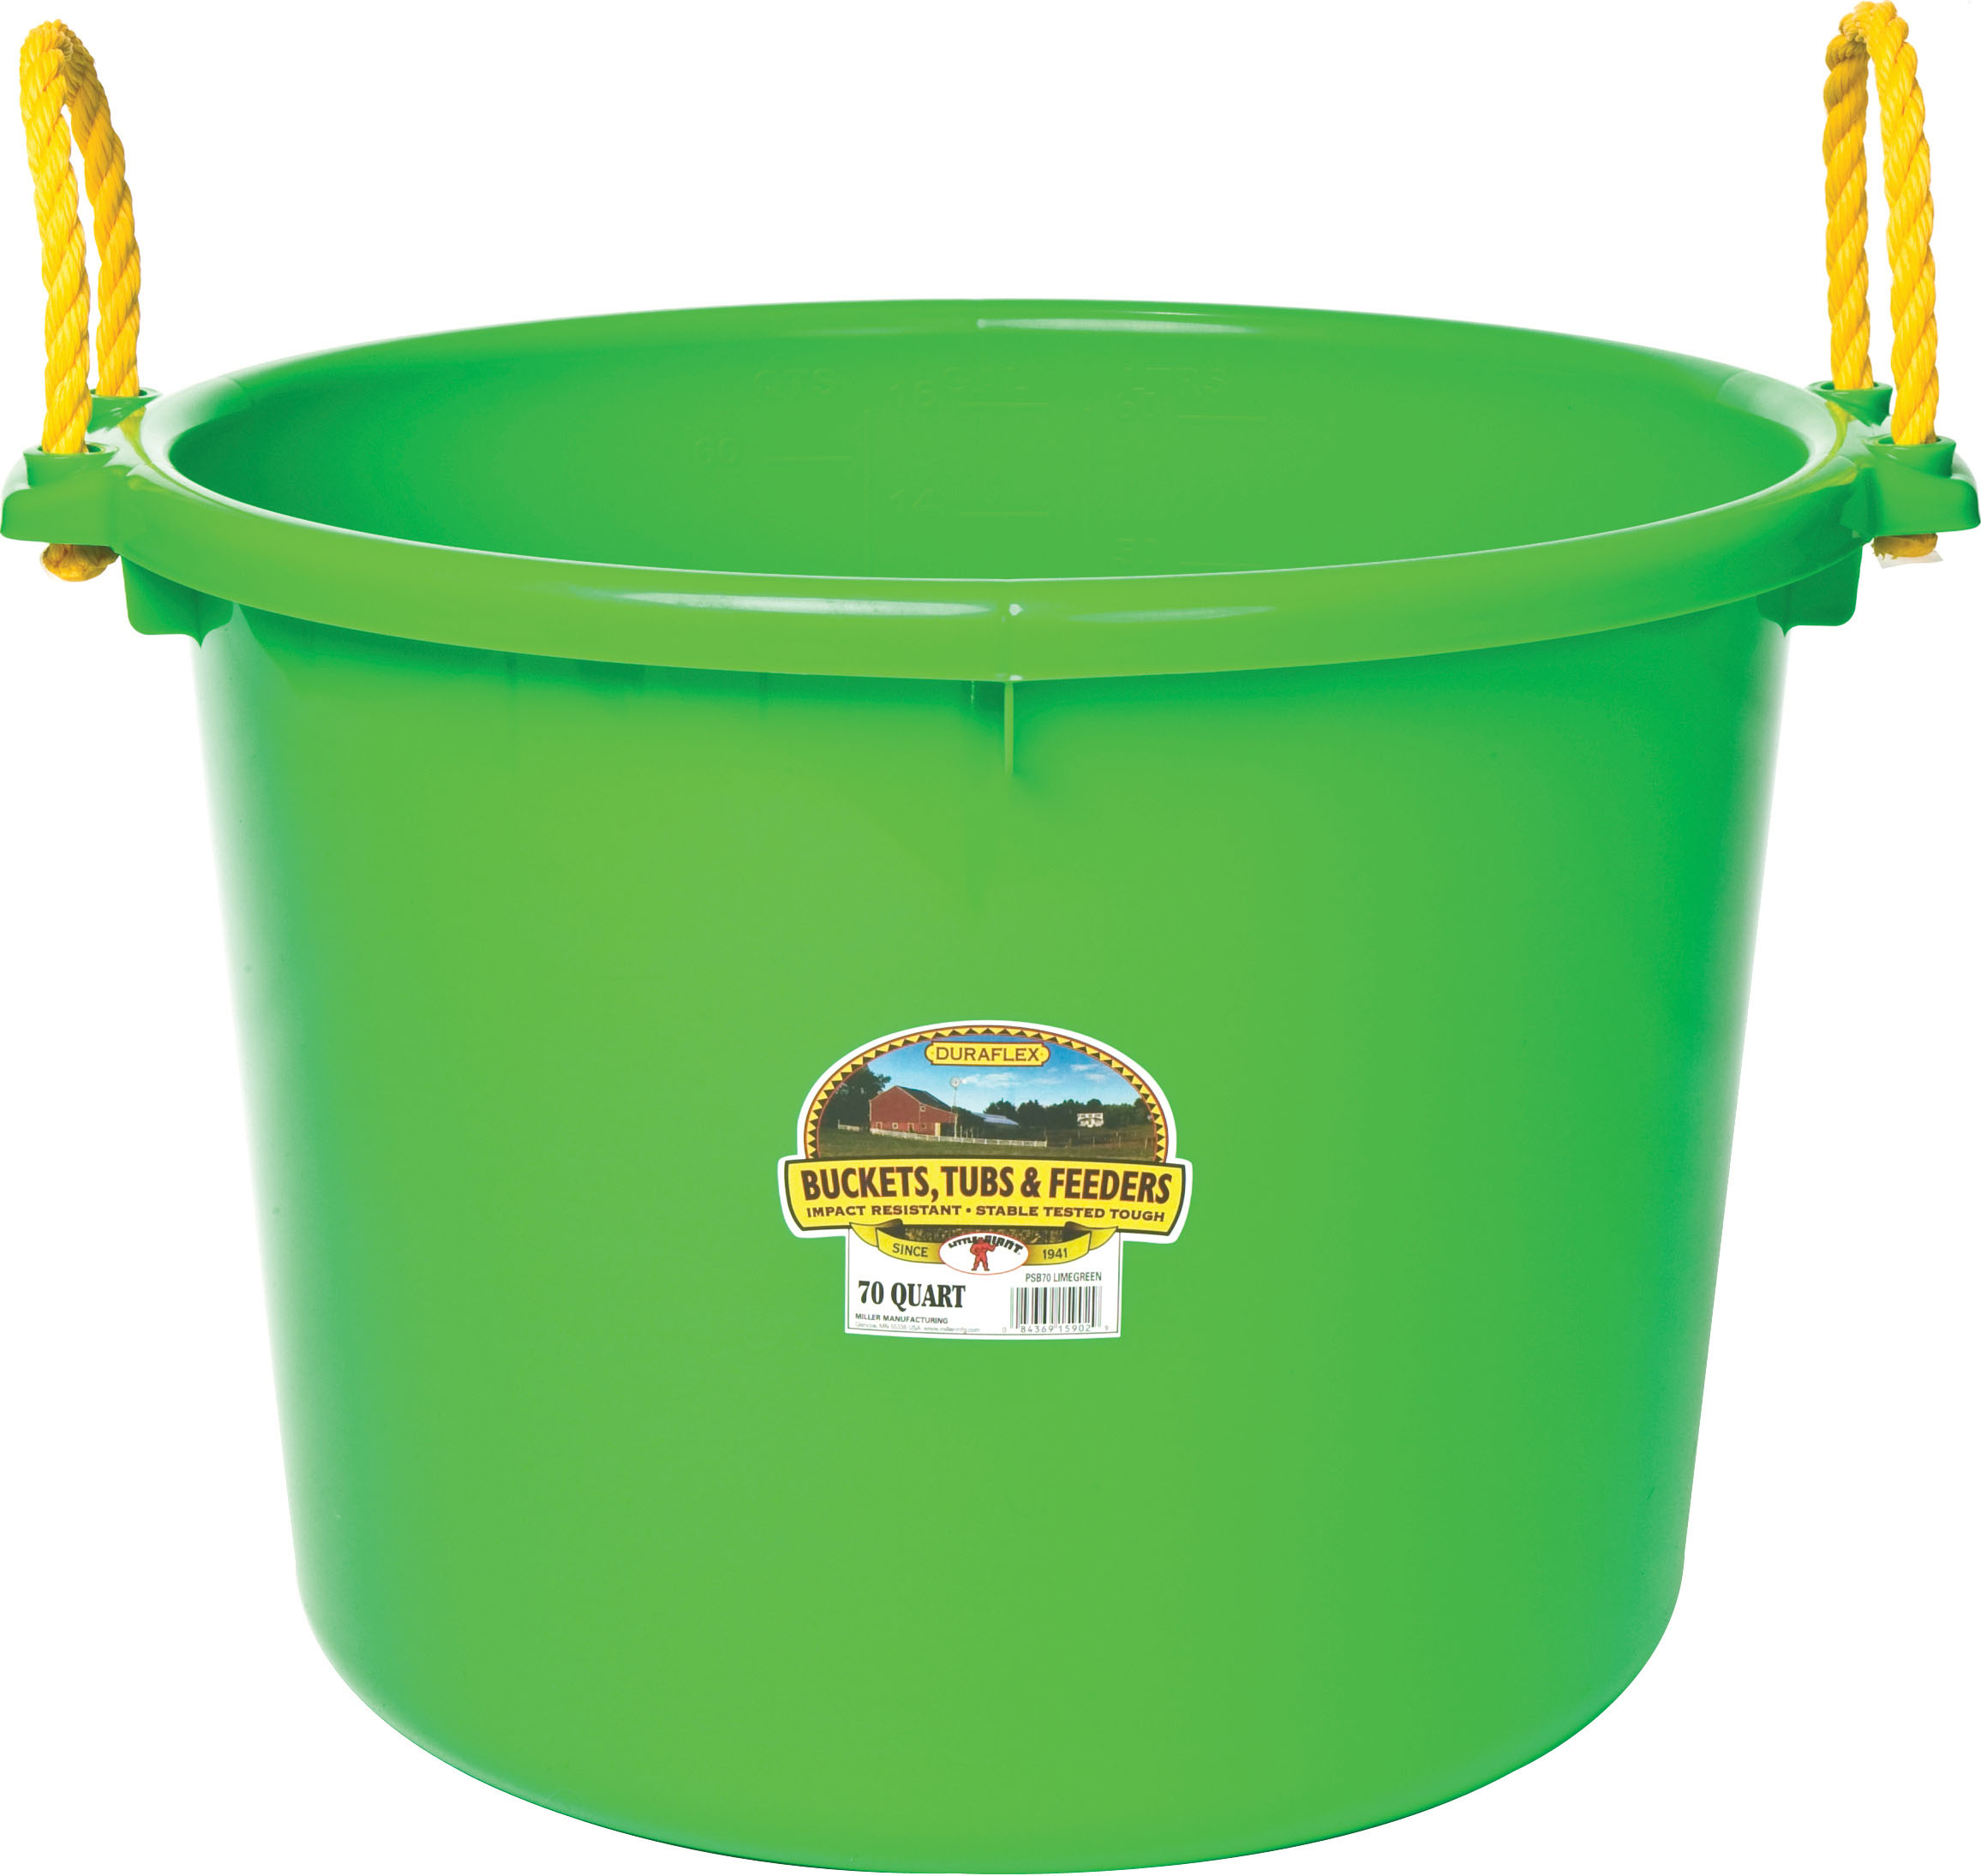 Miller Mfg Co Inc P-Little Giant Muck Tub- Lime Green 70 Quart